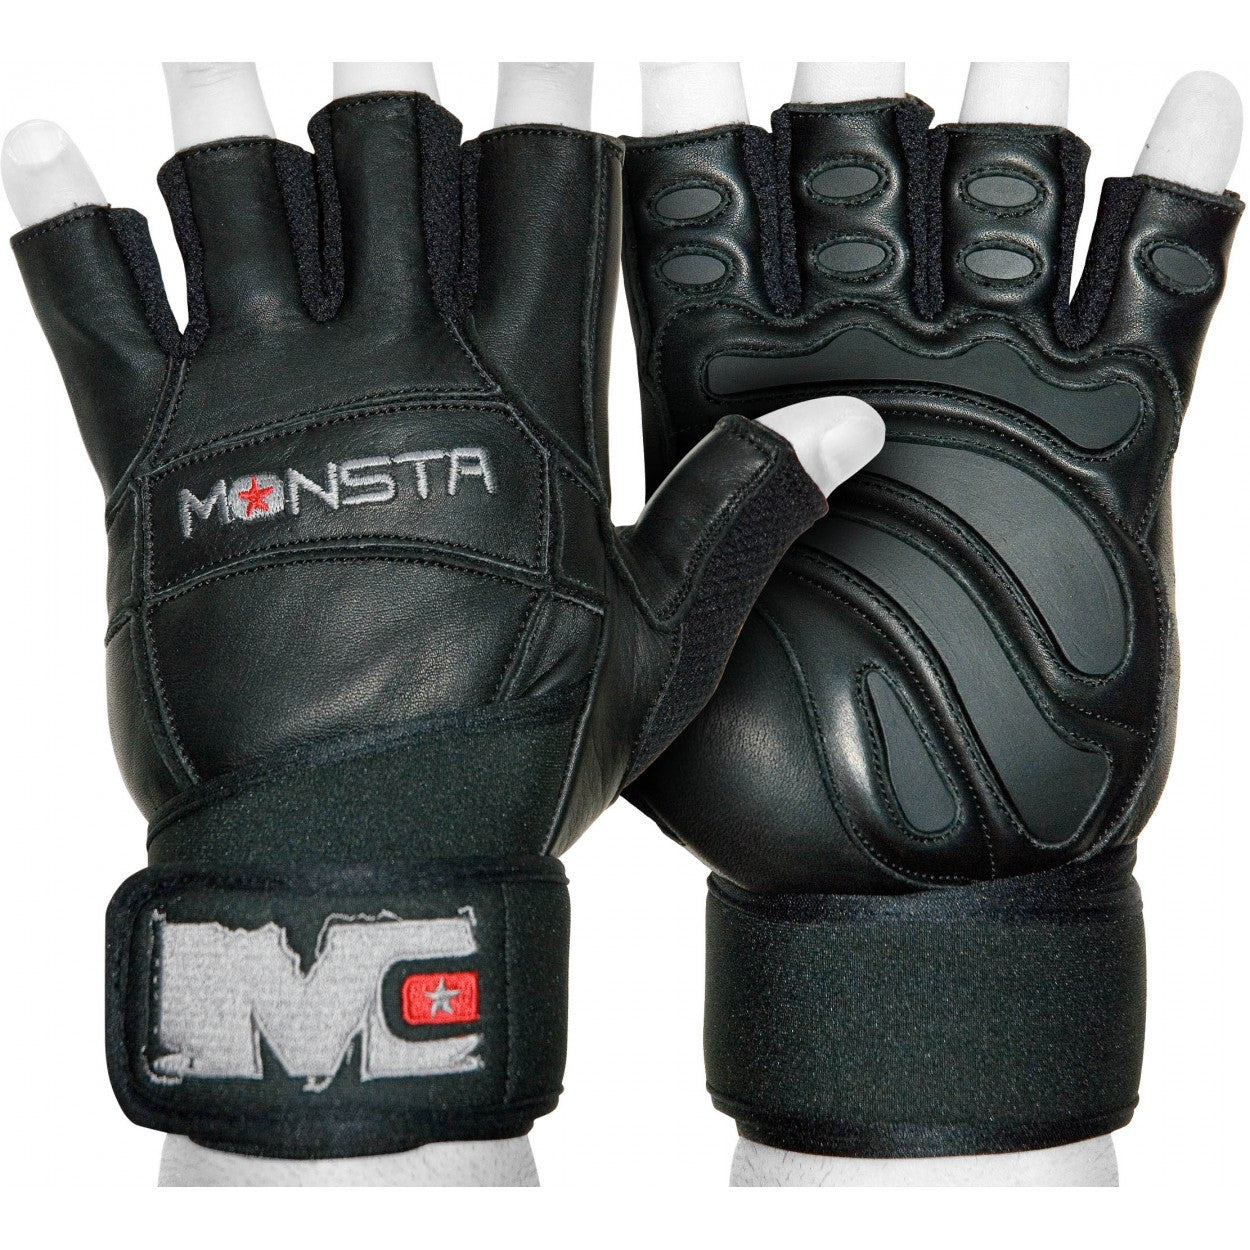 Gloves: Monsta (Wristwrap) - Monsta Clothing Australia